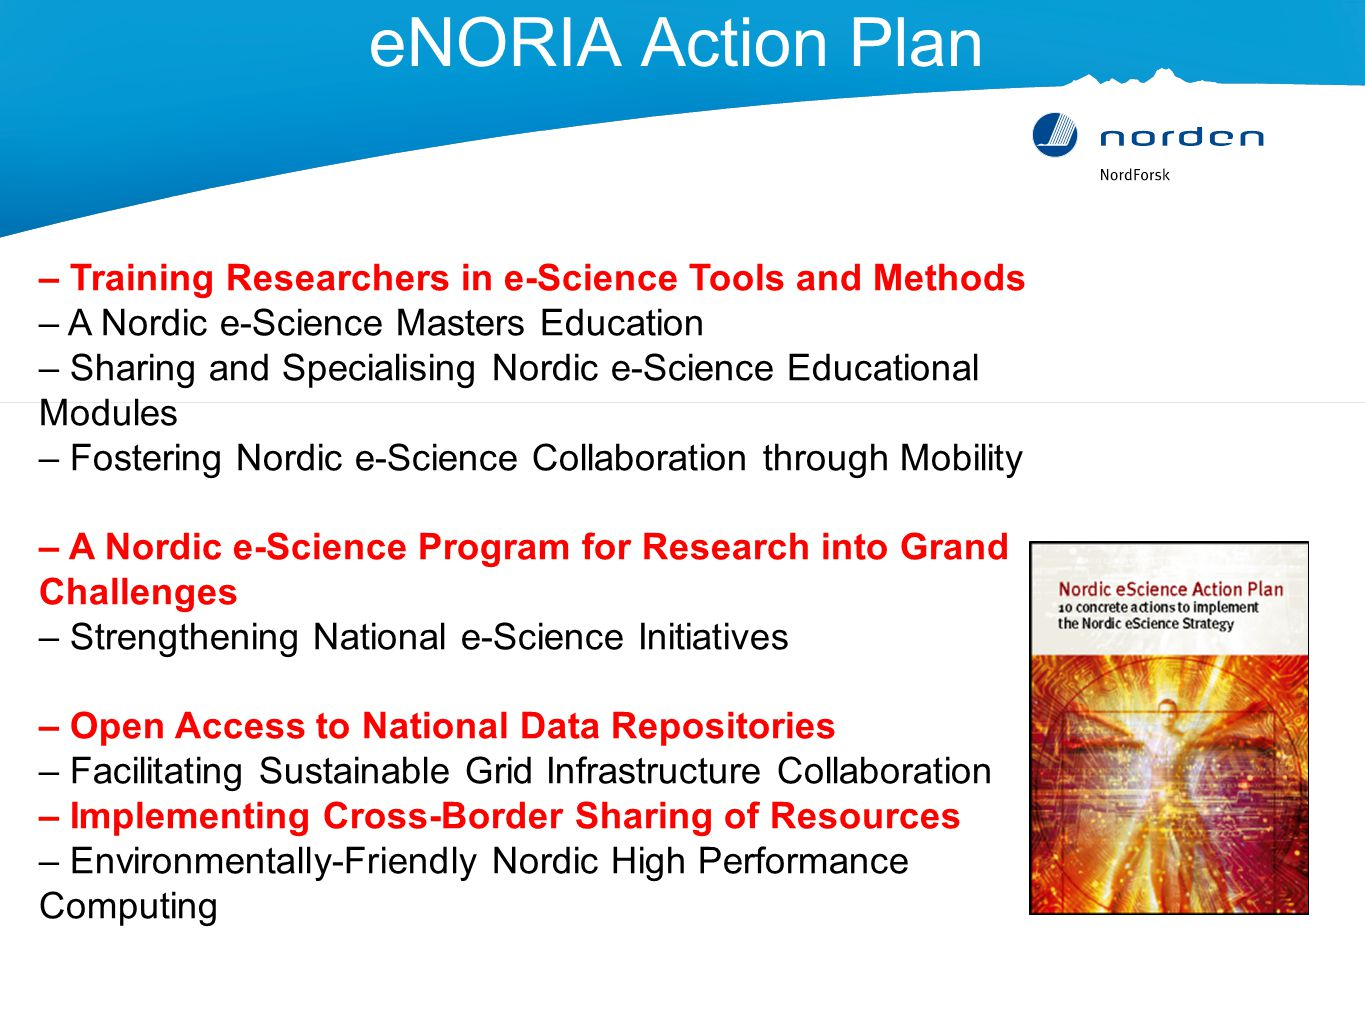 eNORIA Action Plan – Training Researchers in e-Science Tools and Methods – A Nordic e-Science Masters Education – Sharing and Specialising Nordic e-Science Educational Modules – Fostering Nordic e-Science Collaboration through Mobility – A Nordic e-Science Program for Research into Grand Challenges – Strengthening National e-Science Initiatives – Open Access to National Data Repositories – Facilitating Sustainable Grid Infrastructure Collaboration – Implementing Cross-Border Sharing of Resources – Environmentally-Friendly Nordic High Performance Computing